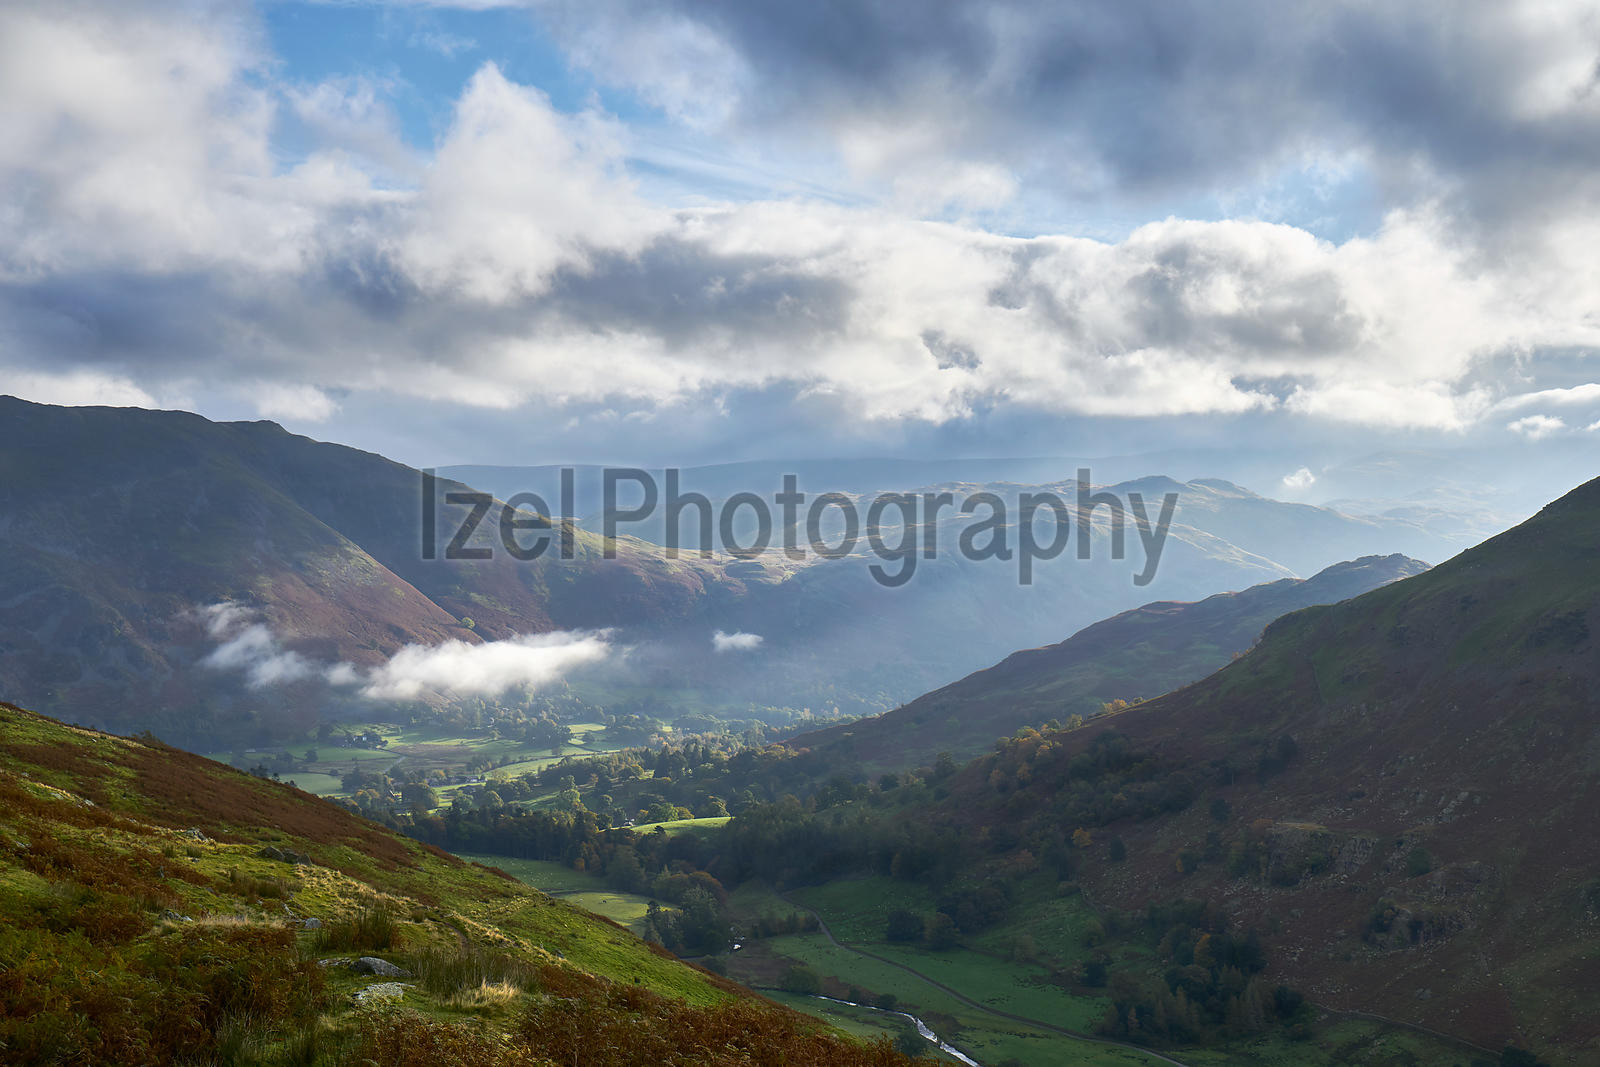 Looking down the trail towards Patterdale and Glenridding that leads up to the Hole in the Wall below Helvellyn in the Lake District, England, UK.